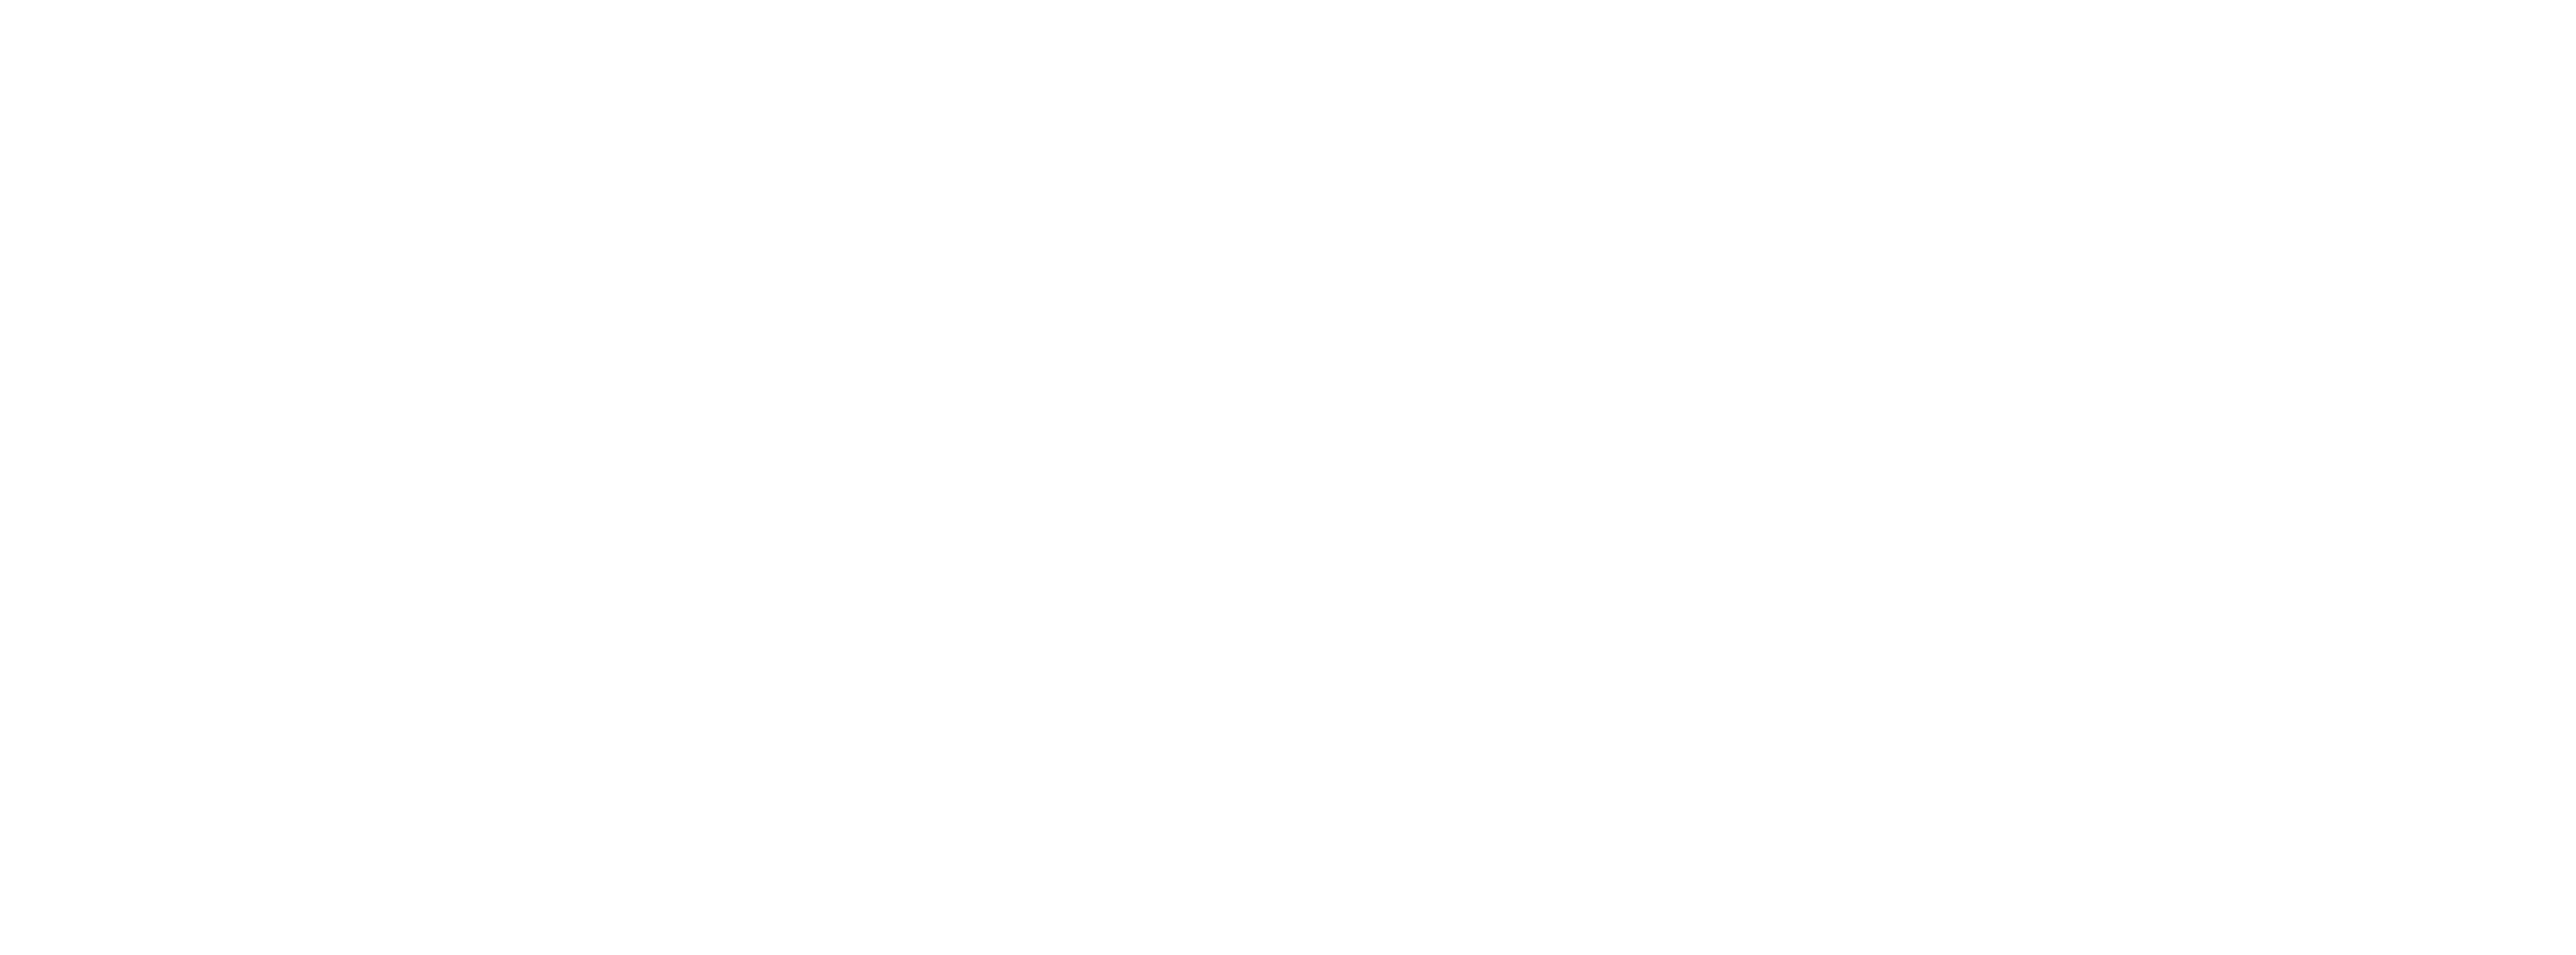 SustainabilityNook